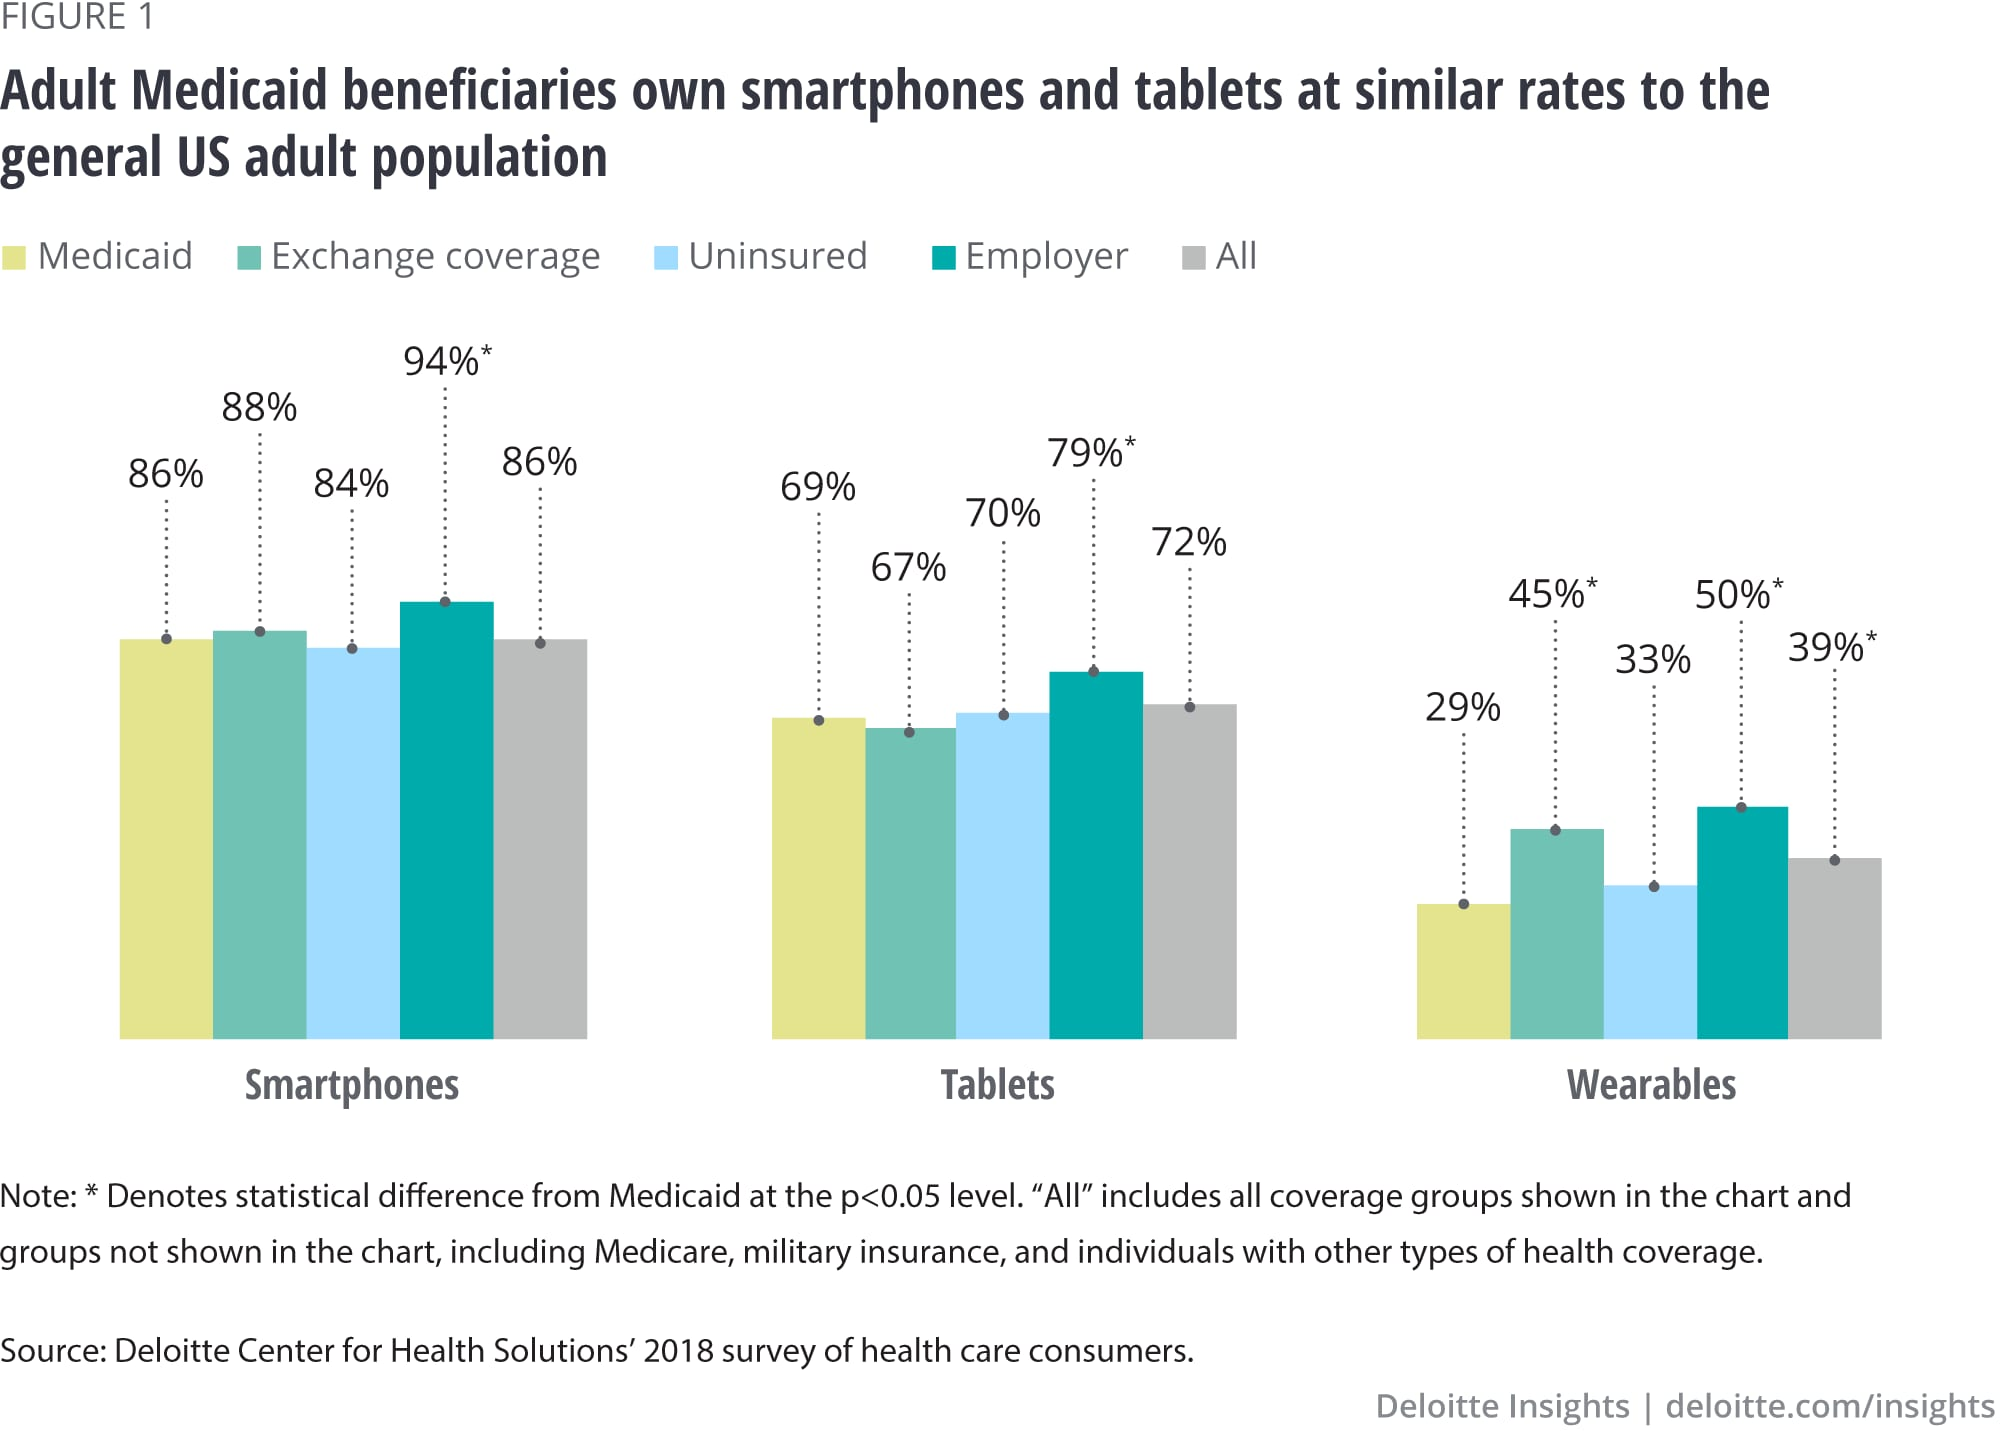 Adult Medicaid beneficiaries own smartphones and tablets at similar rates to the general US adult population